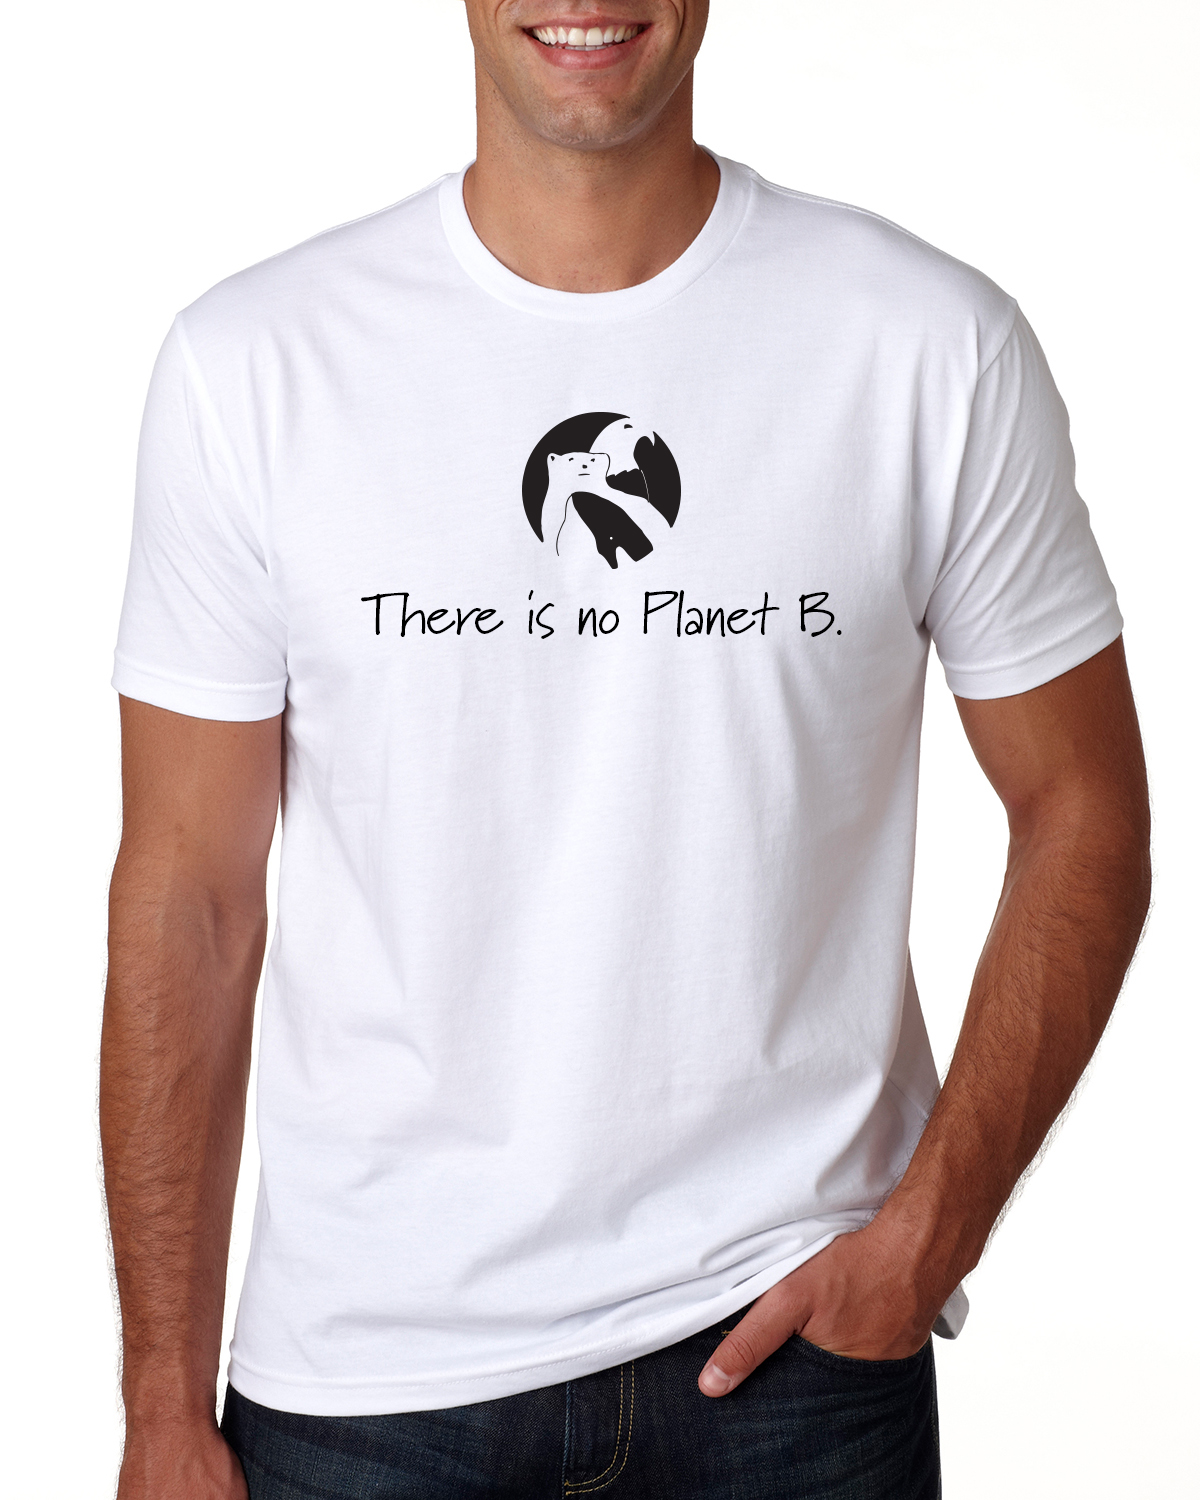 There is No Planet B Short sleeve t-shirt for men/unisex (White)